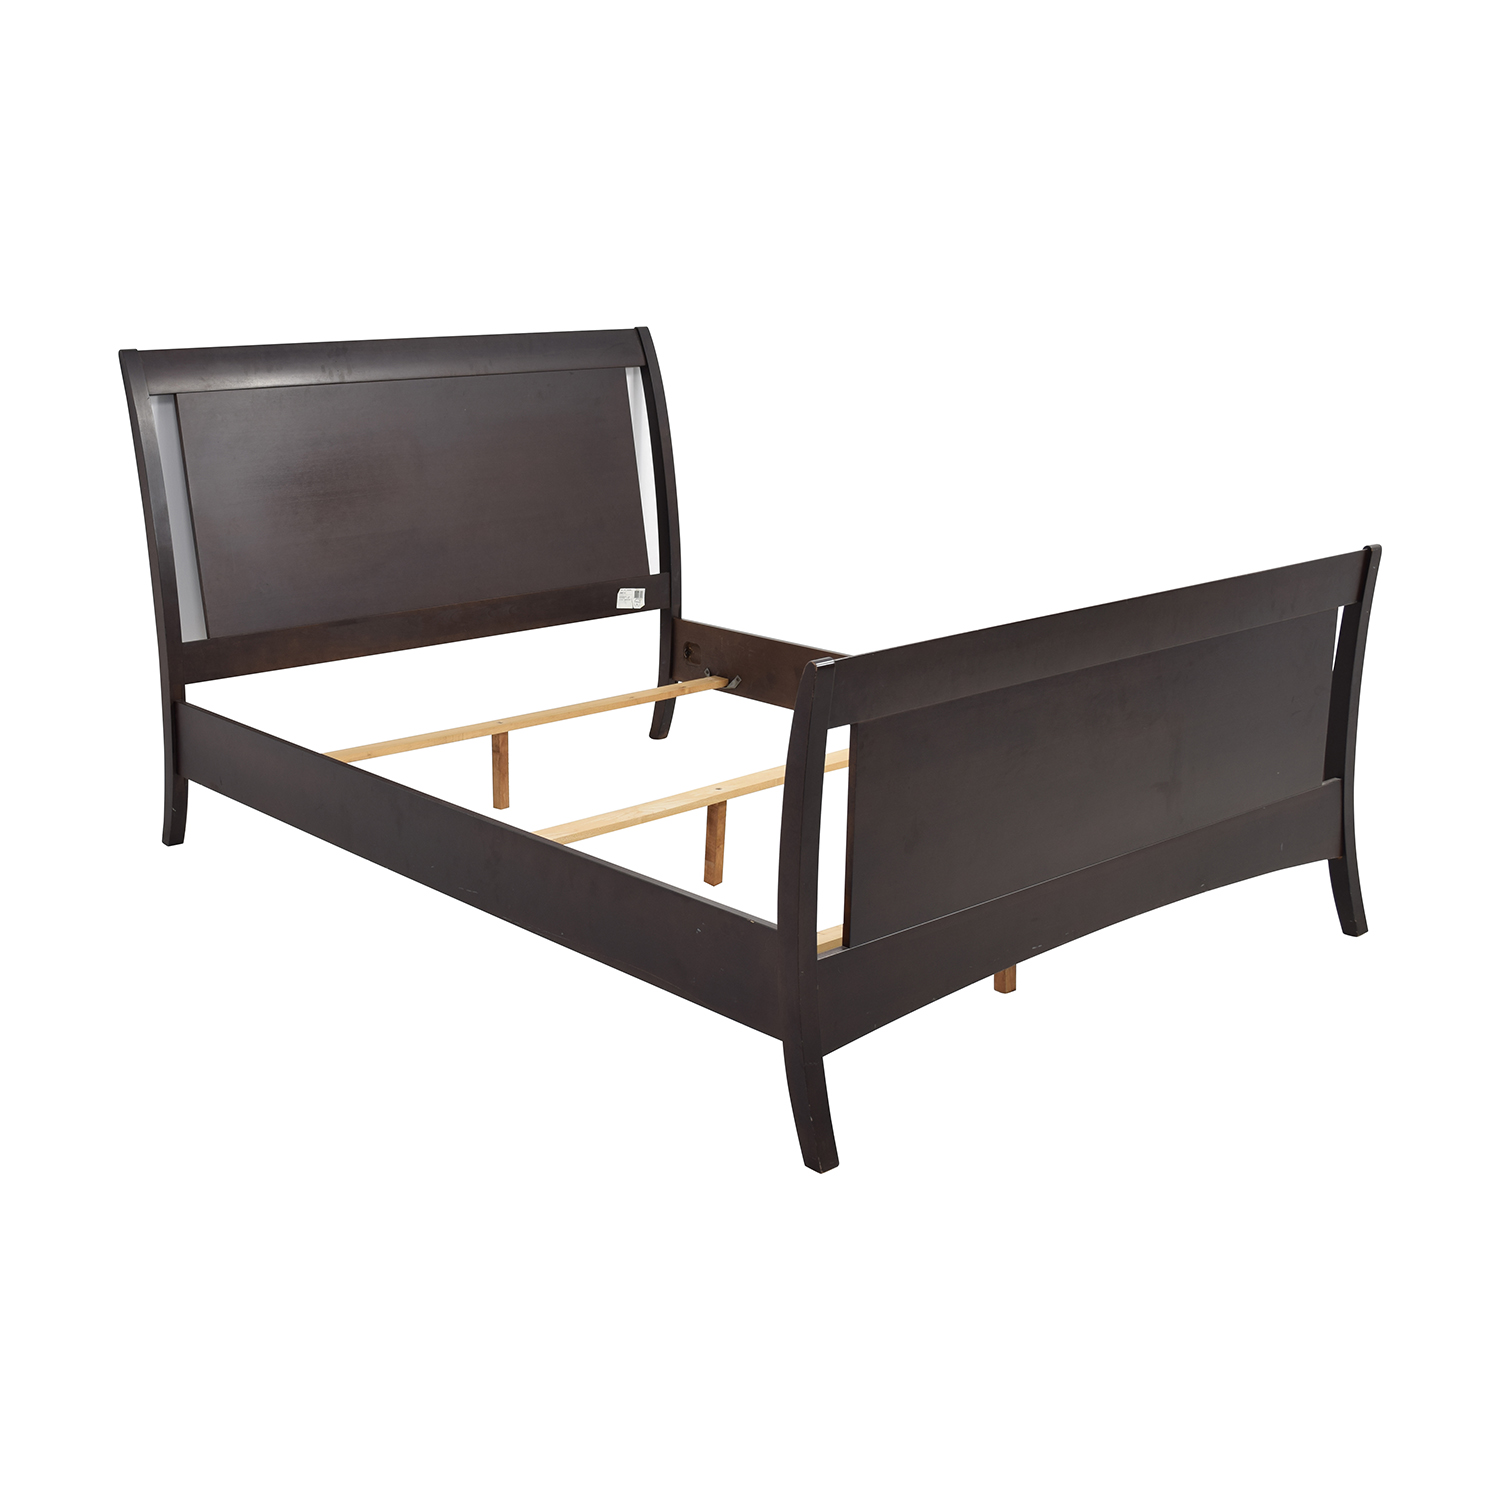 72 off macy s furniture collection macy s dark wood 10236 | macys dark wood queen sleigh bed frame second hand